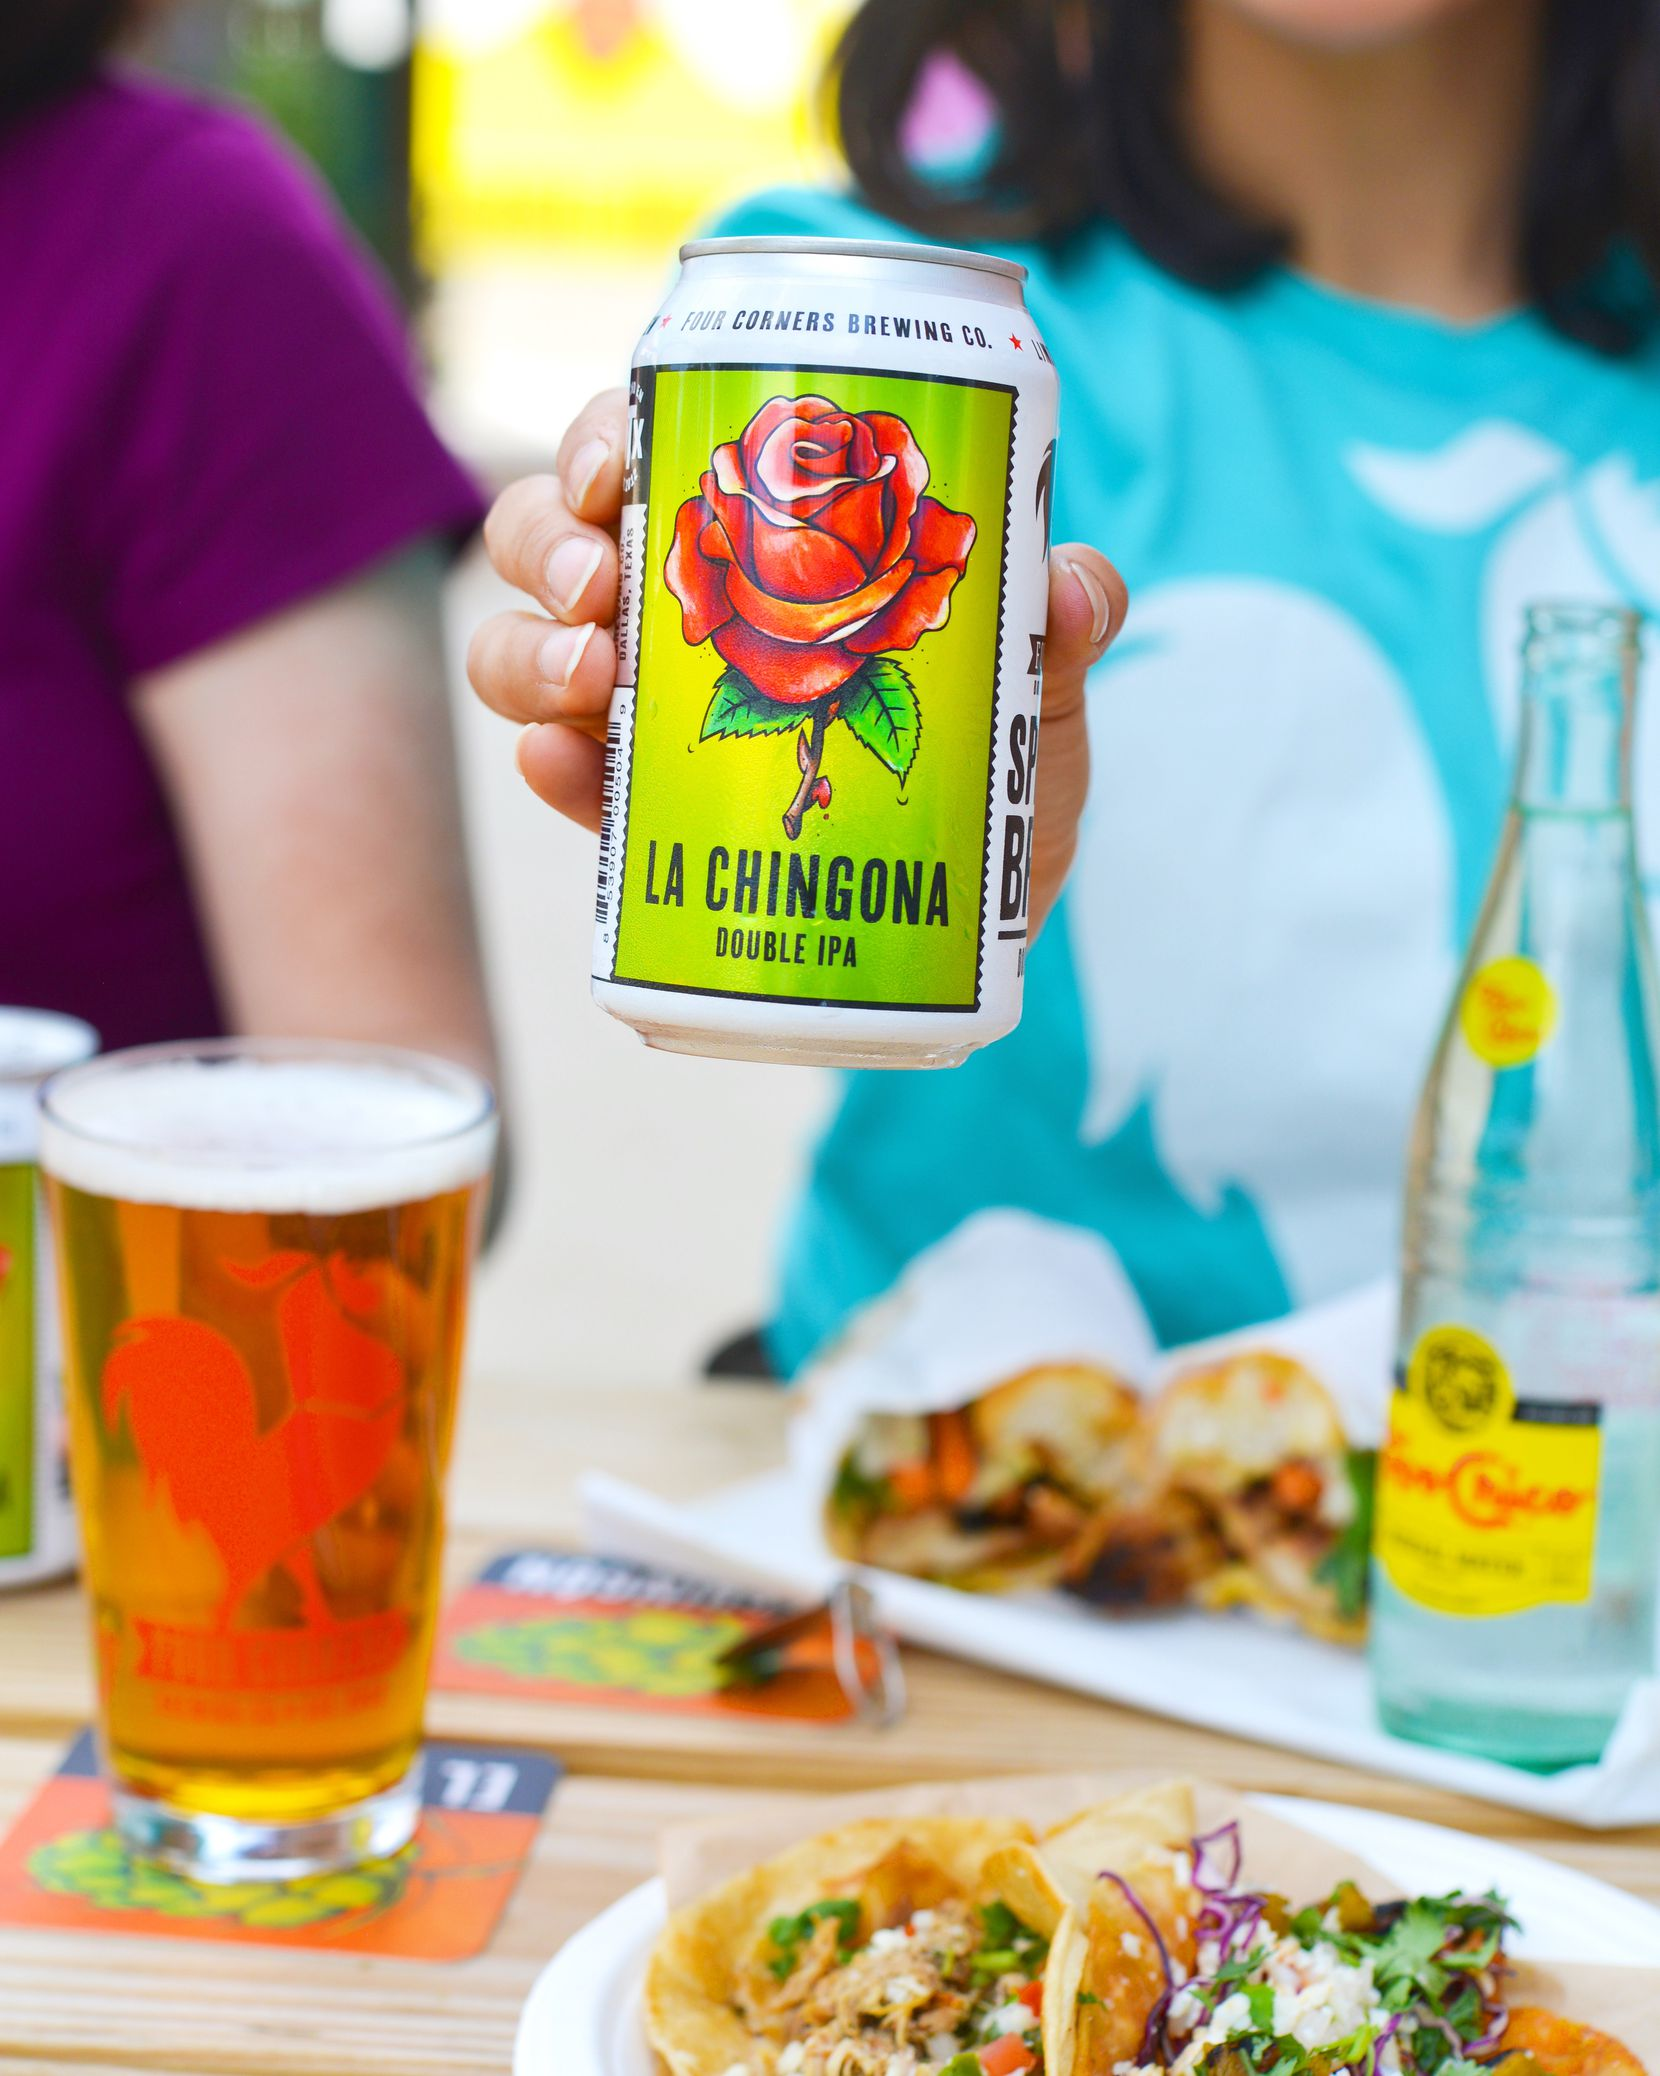 The Chingonx music festival will celebrate the year-round release of La Chingona Double IPA from Four Corners Brewery.